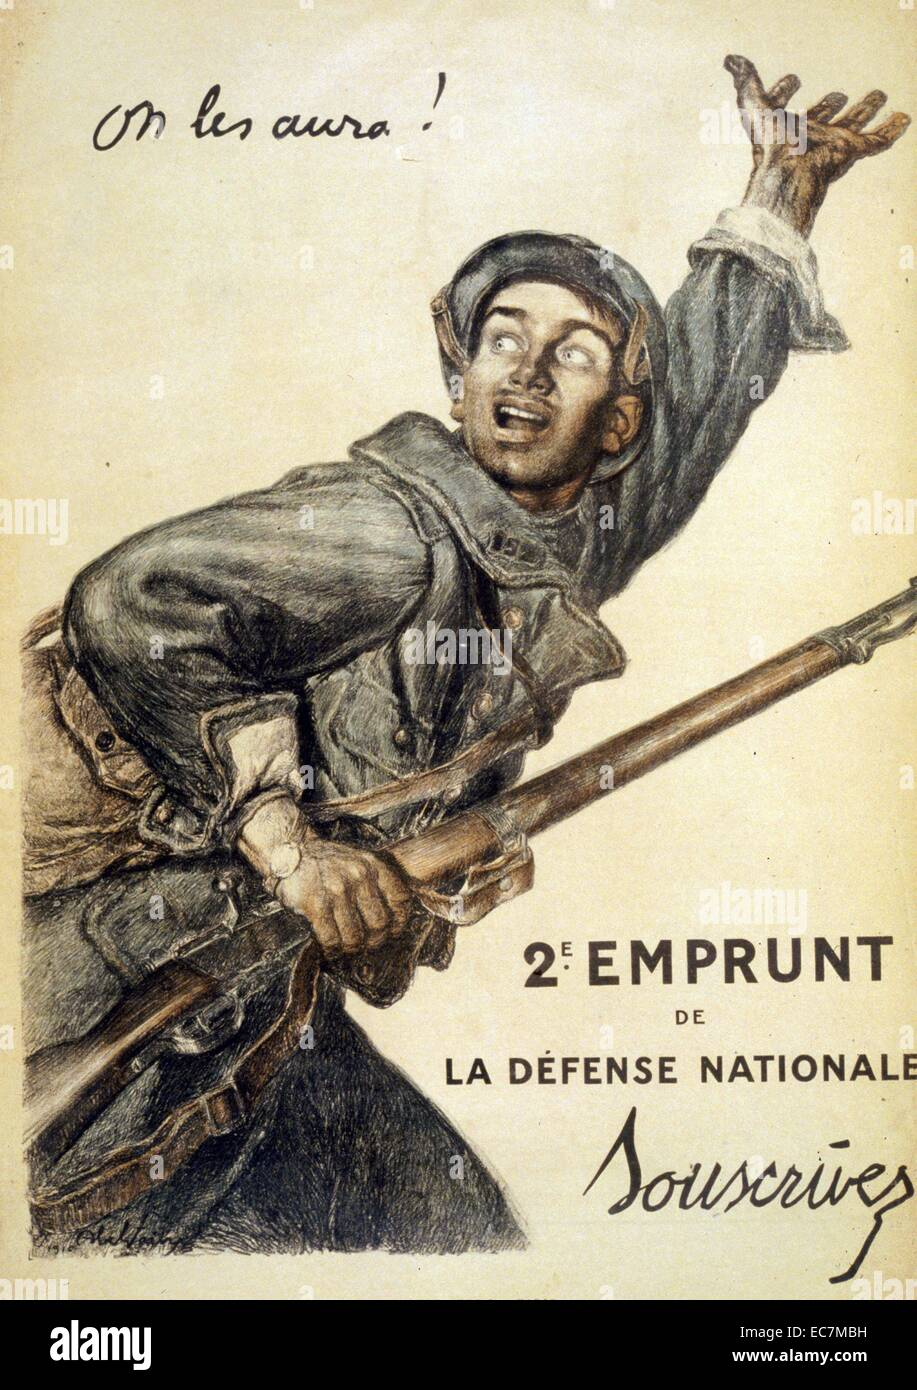 We'll get them! Subscribe to the 2nd National Defense Loan. A French soldier with a gun in one hand, and the - Stock Image